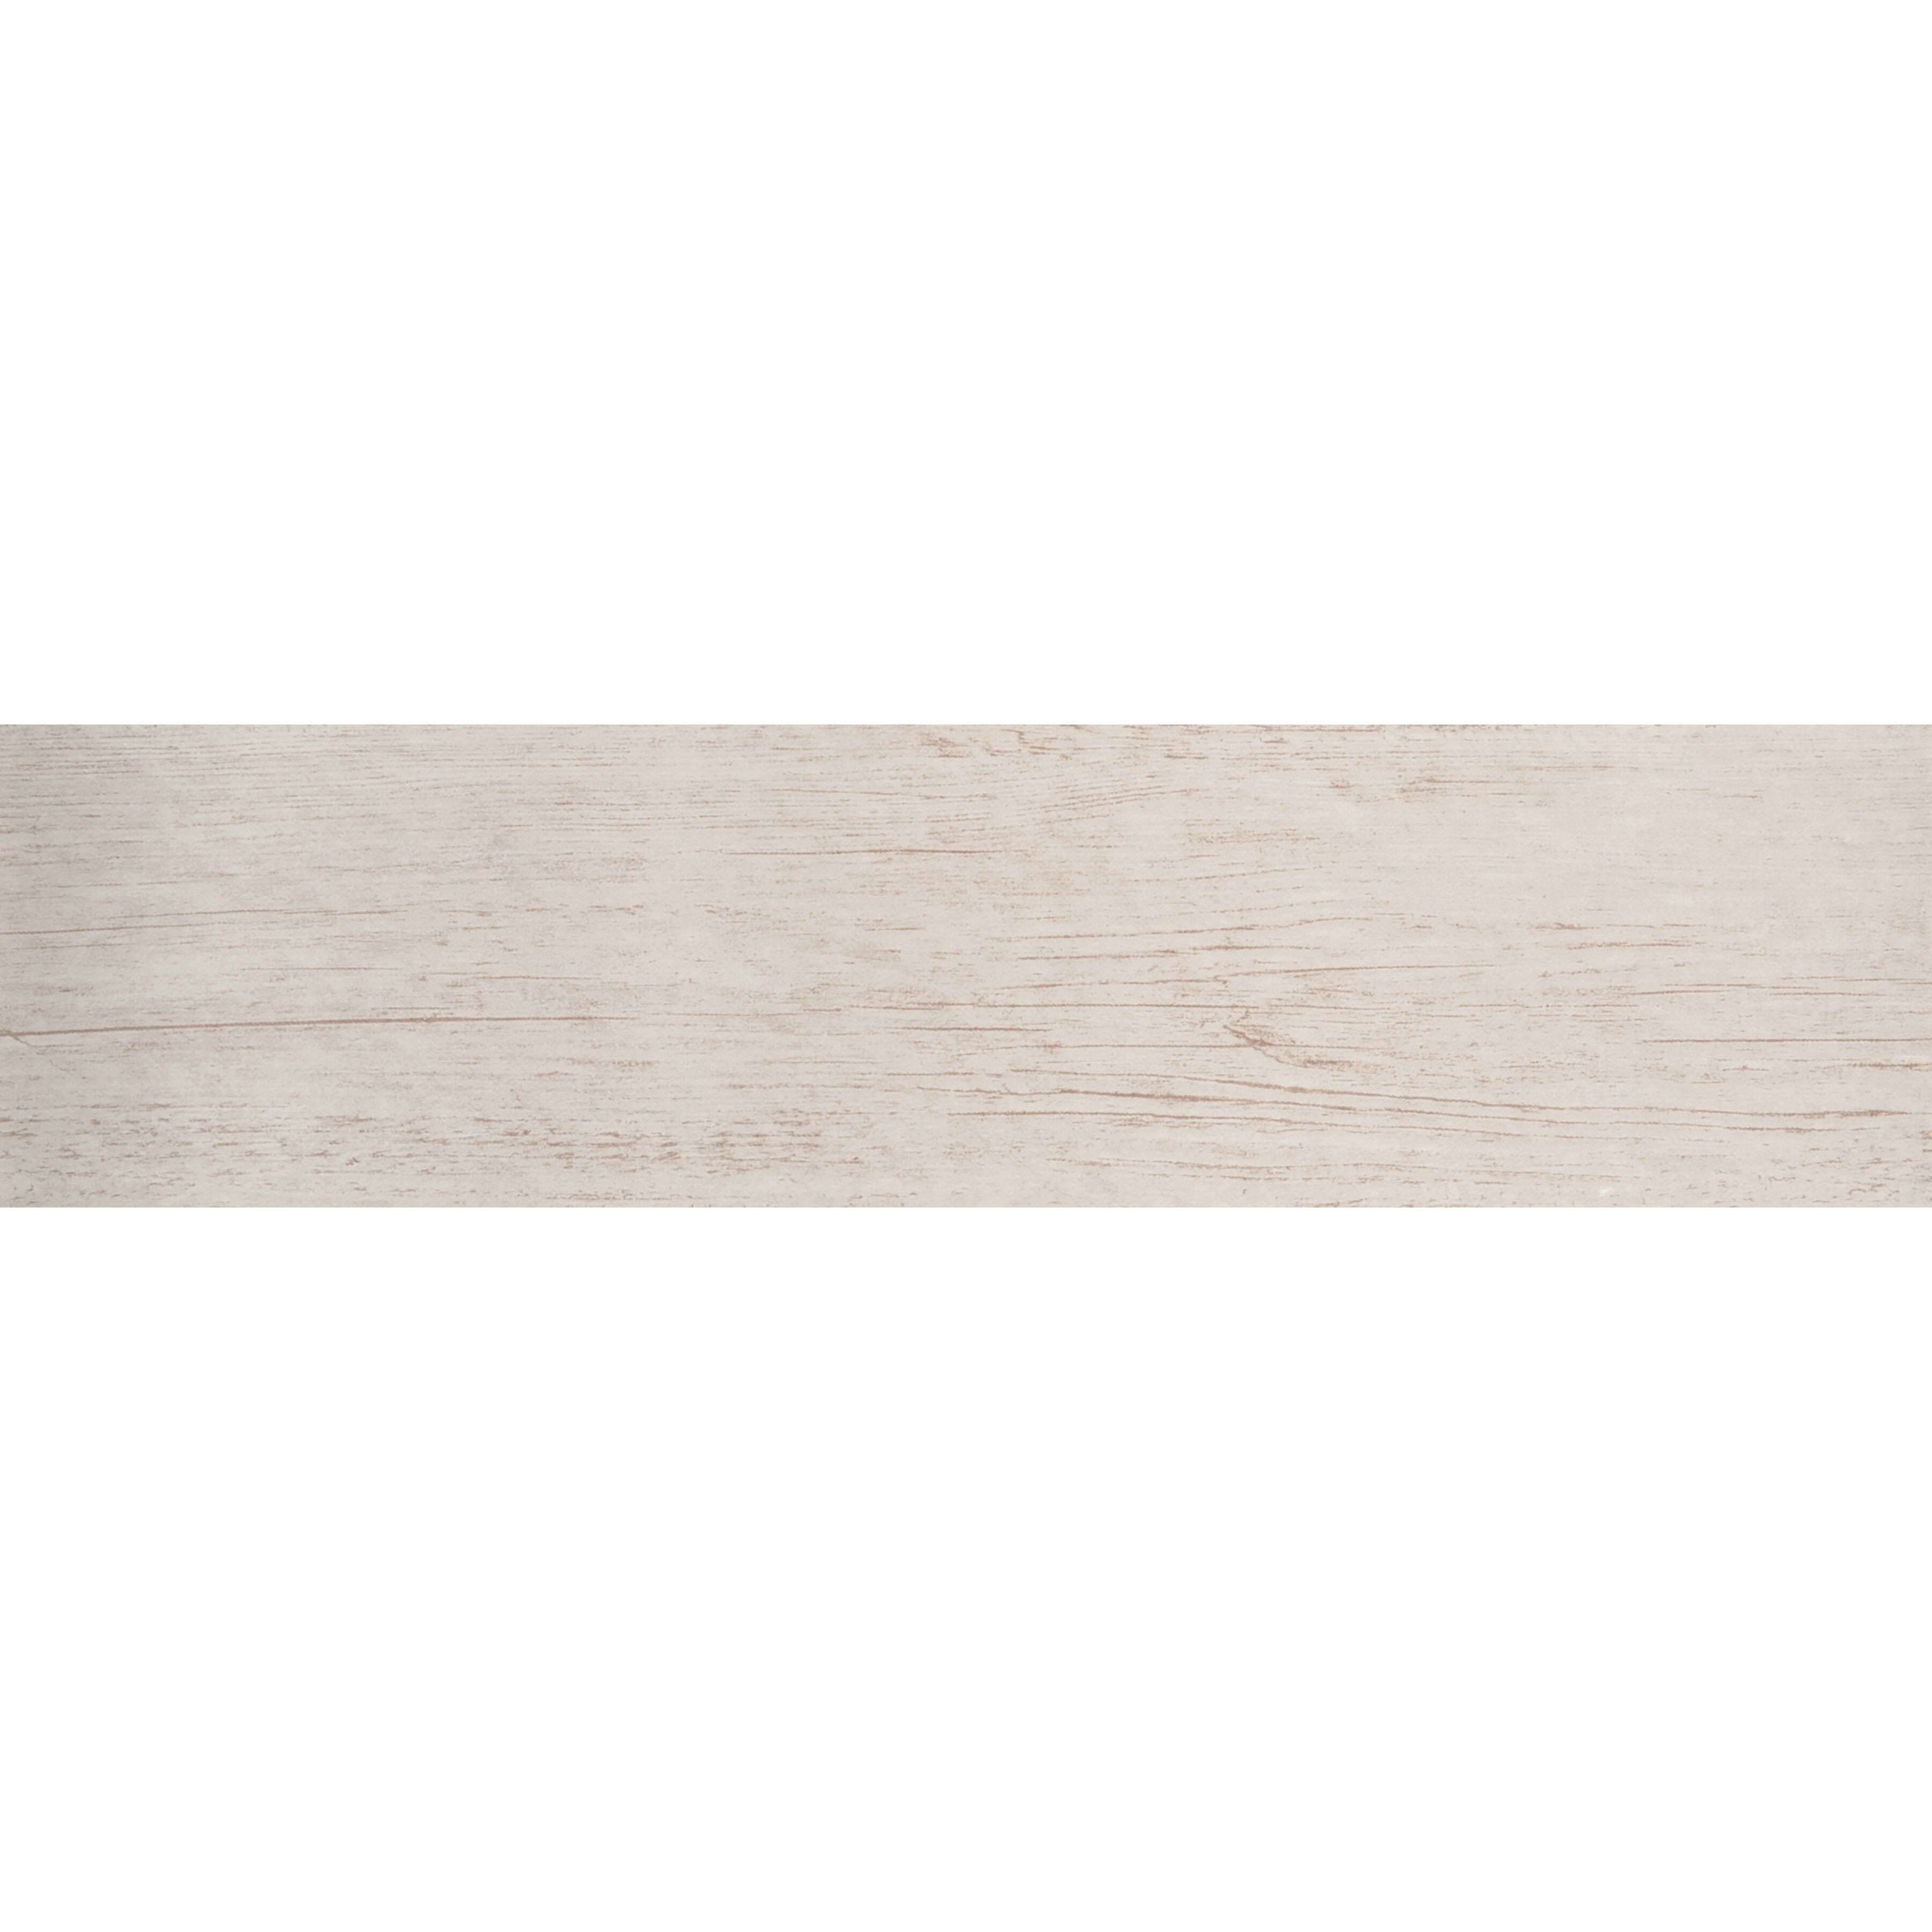 Emser Tile Country 6 Quot X 24 Quot Porcelain Wood Look Tile In